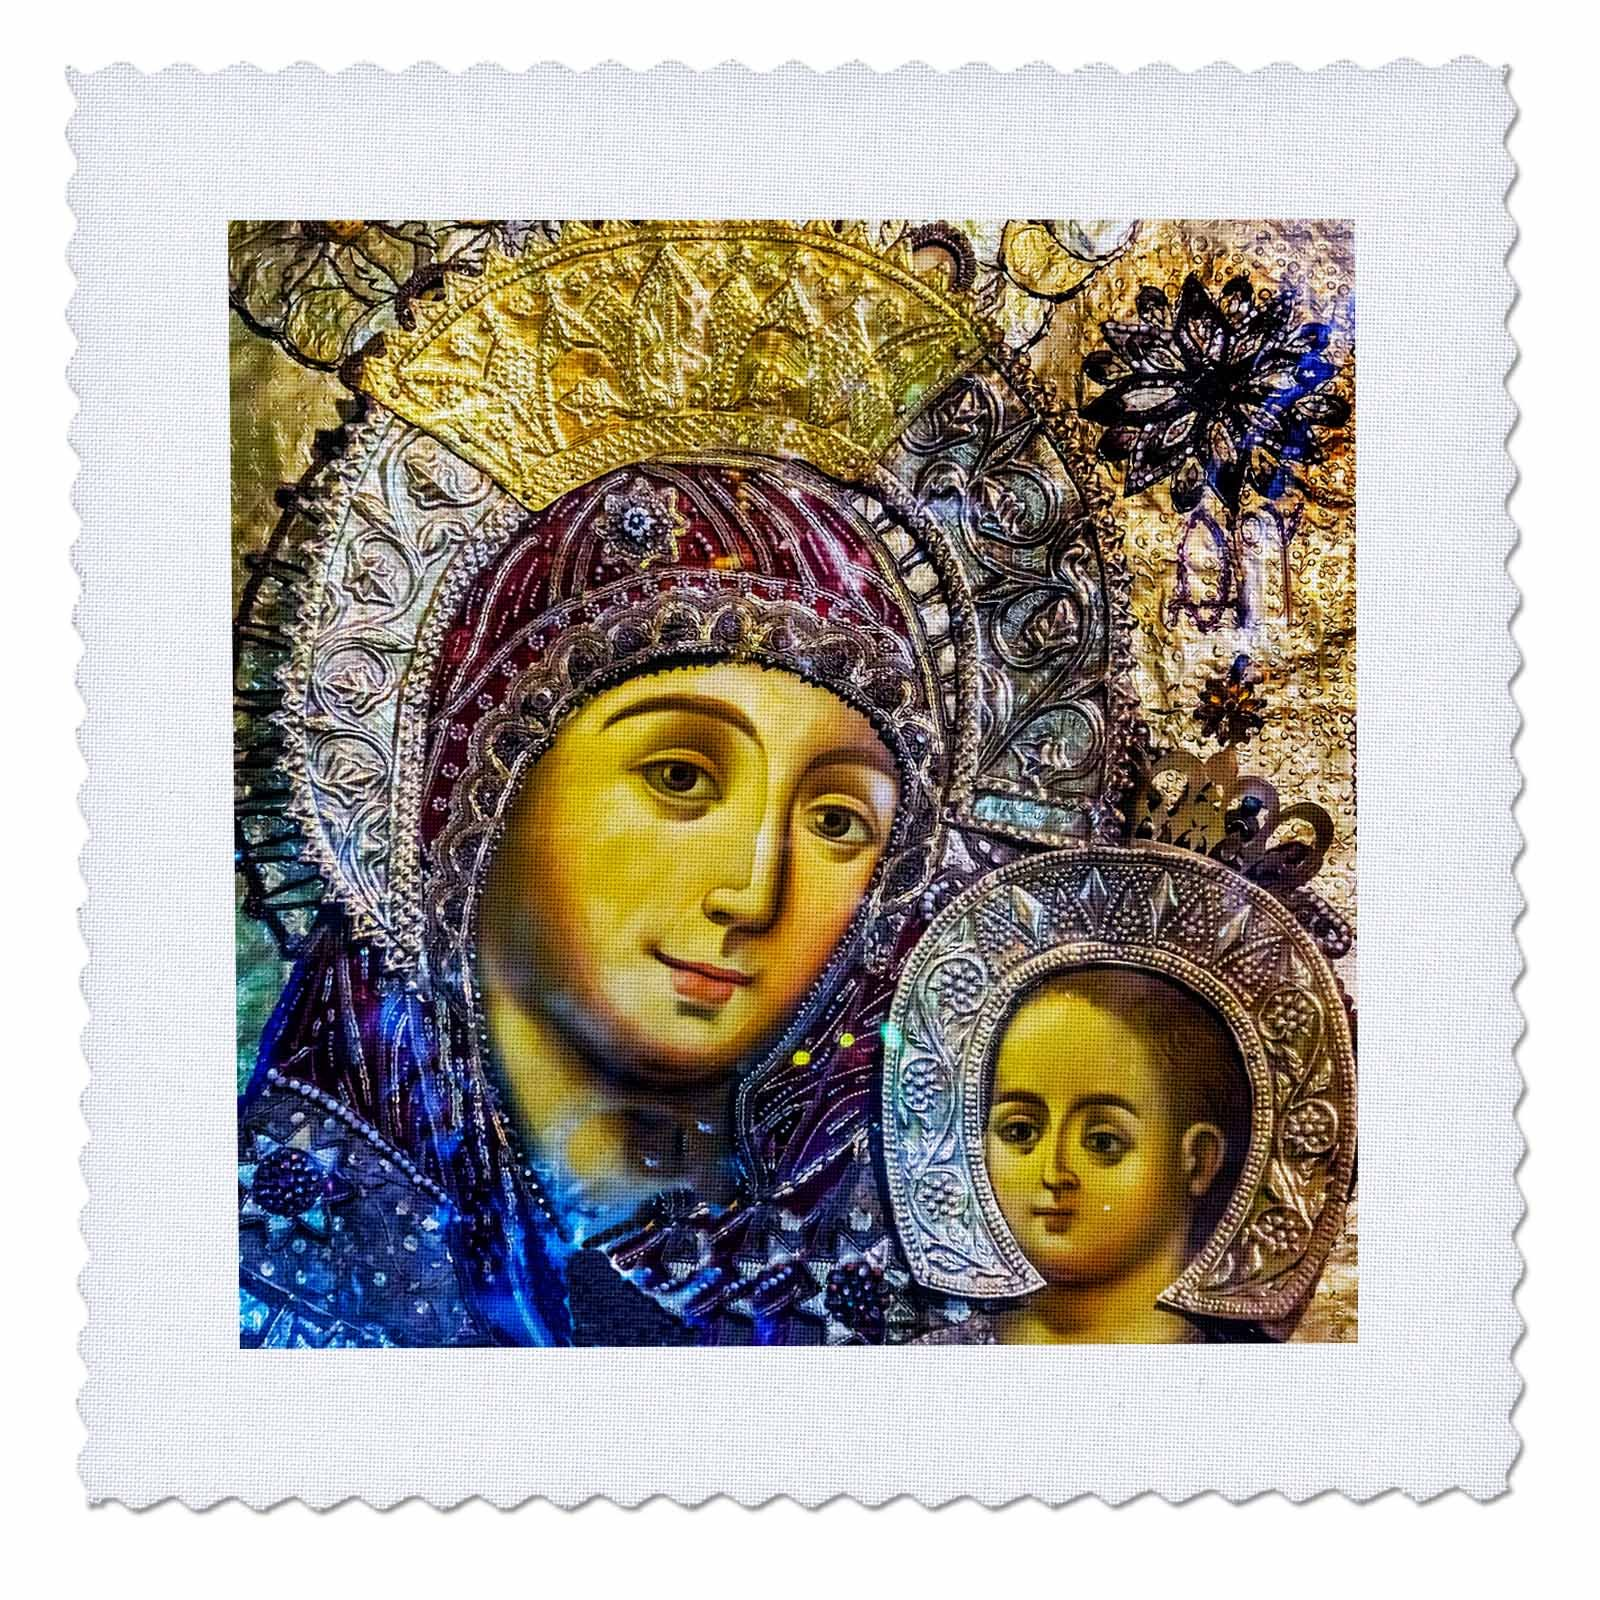 3dRose Danita Delimont - Religion - Mary and Jesus Icon, Church of the Nativity, Bethlehem, Palestine. - 20x20 inch quilt square (qs_276863_8)